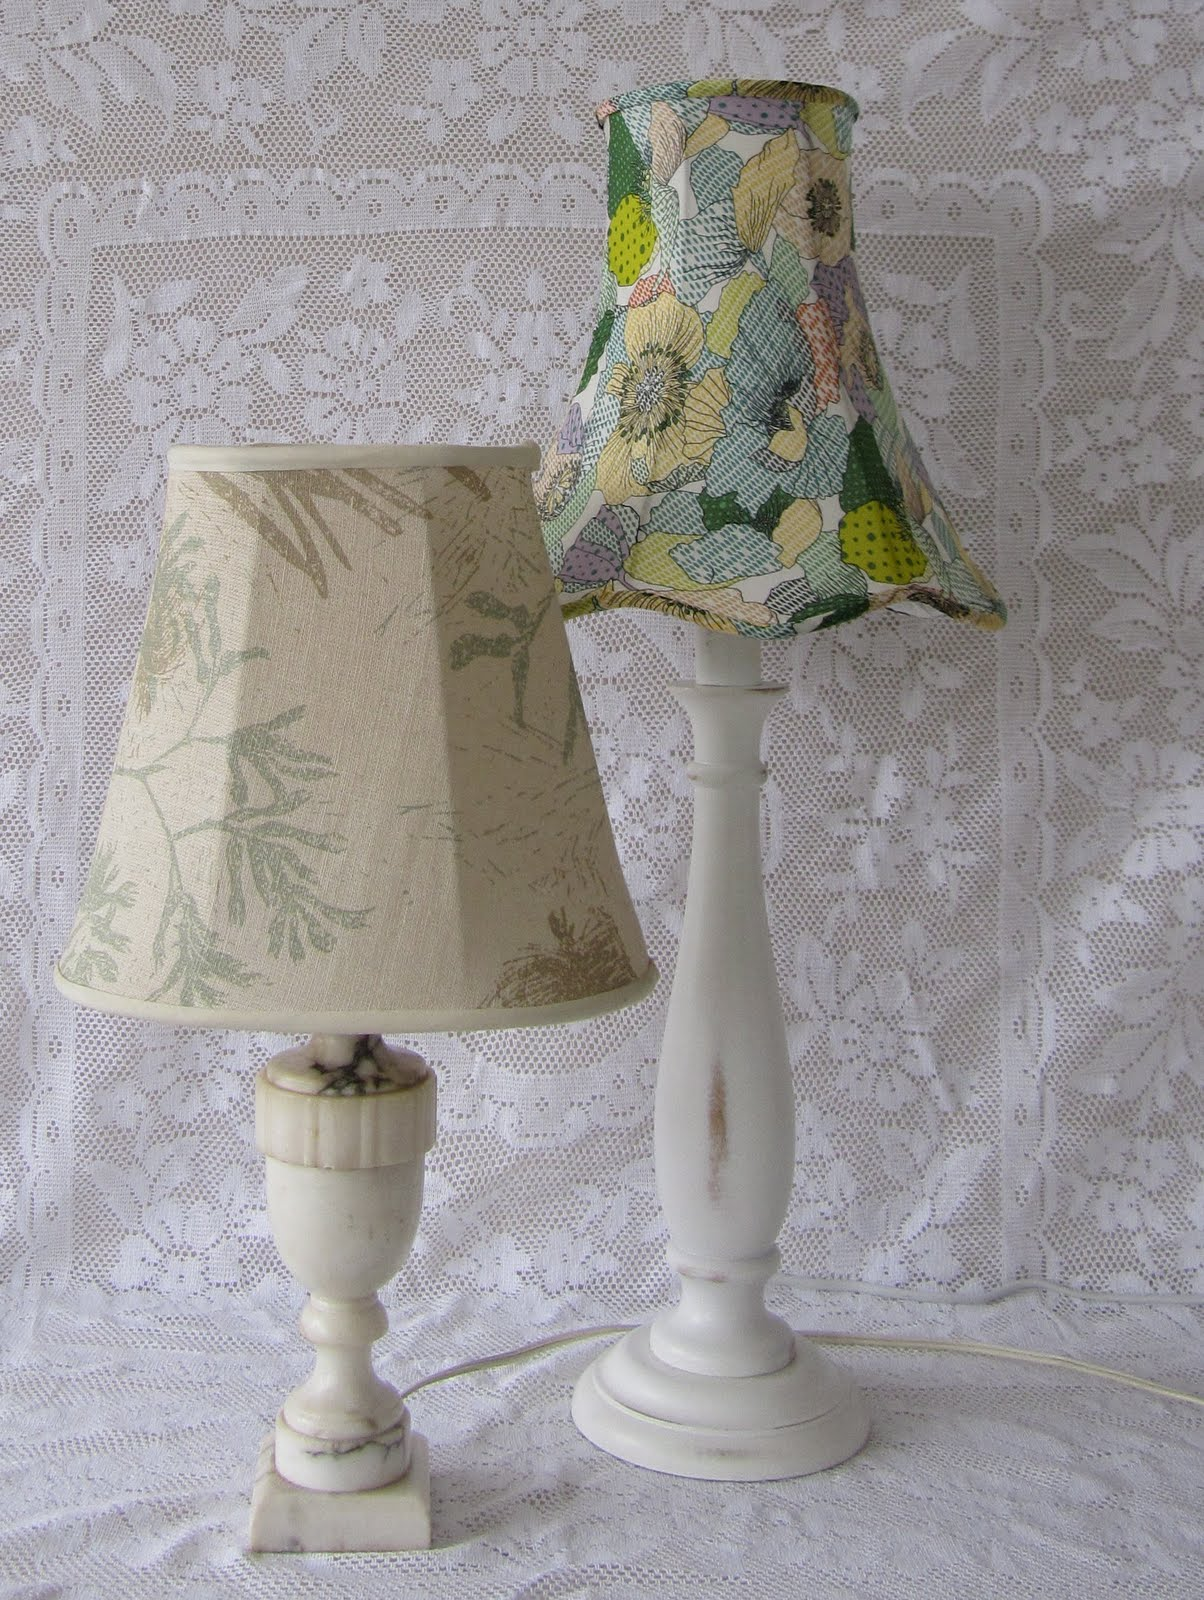 Small things simple pleasures how to recover a lampshade tutorial ive just recovered an old frame with fabric for the childs room as far as classic proportions go this ones too small for the stand but in this case keyboard keysfo Images